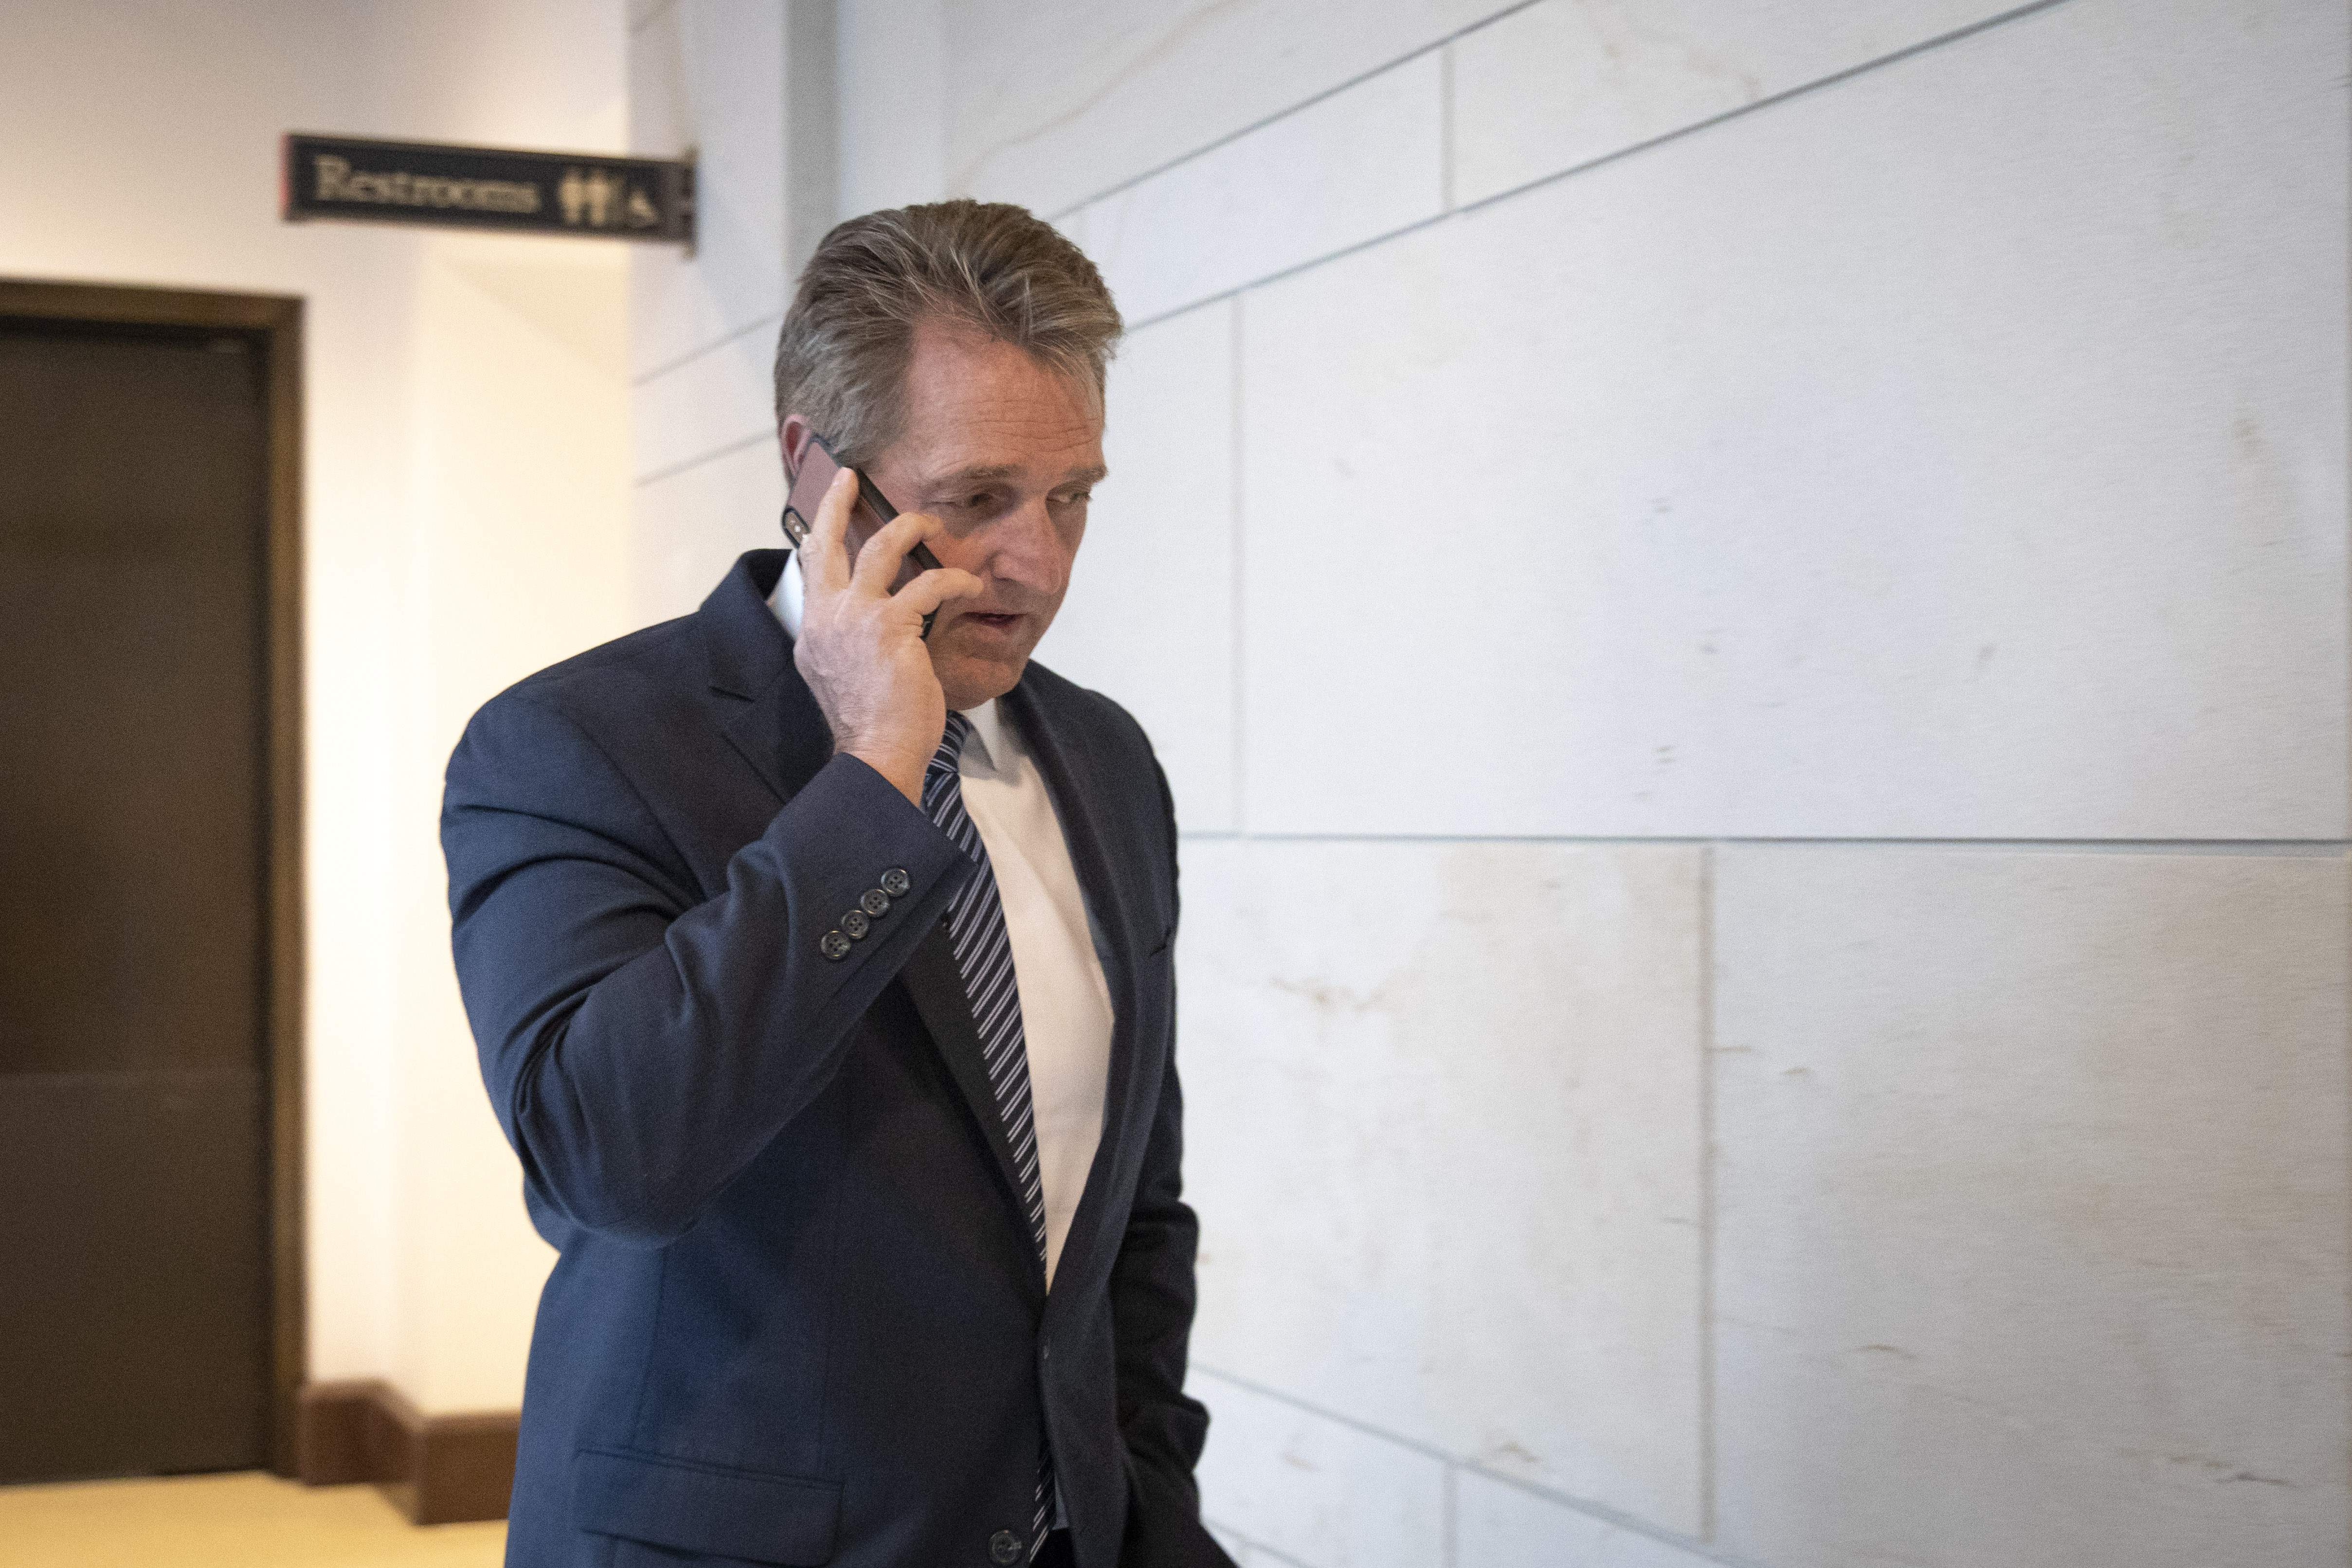 Sen. Jeff Flake arrives at the Office of Senate Security, which houses a 'sensitive compartmented information facility,' or SCIF, where Senators are able to view the report about alleged sexual assaults by Supreme Court nominee Judge Brett Kavanaugh.